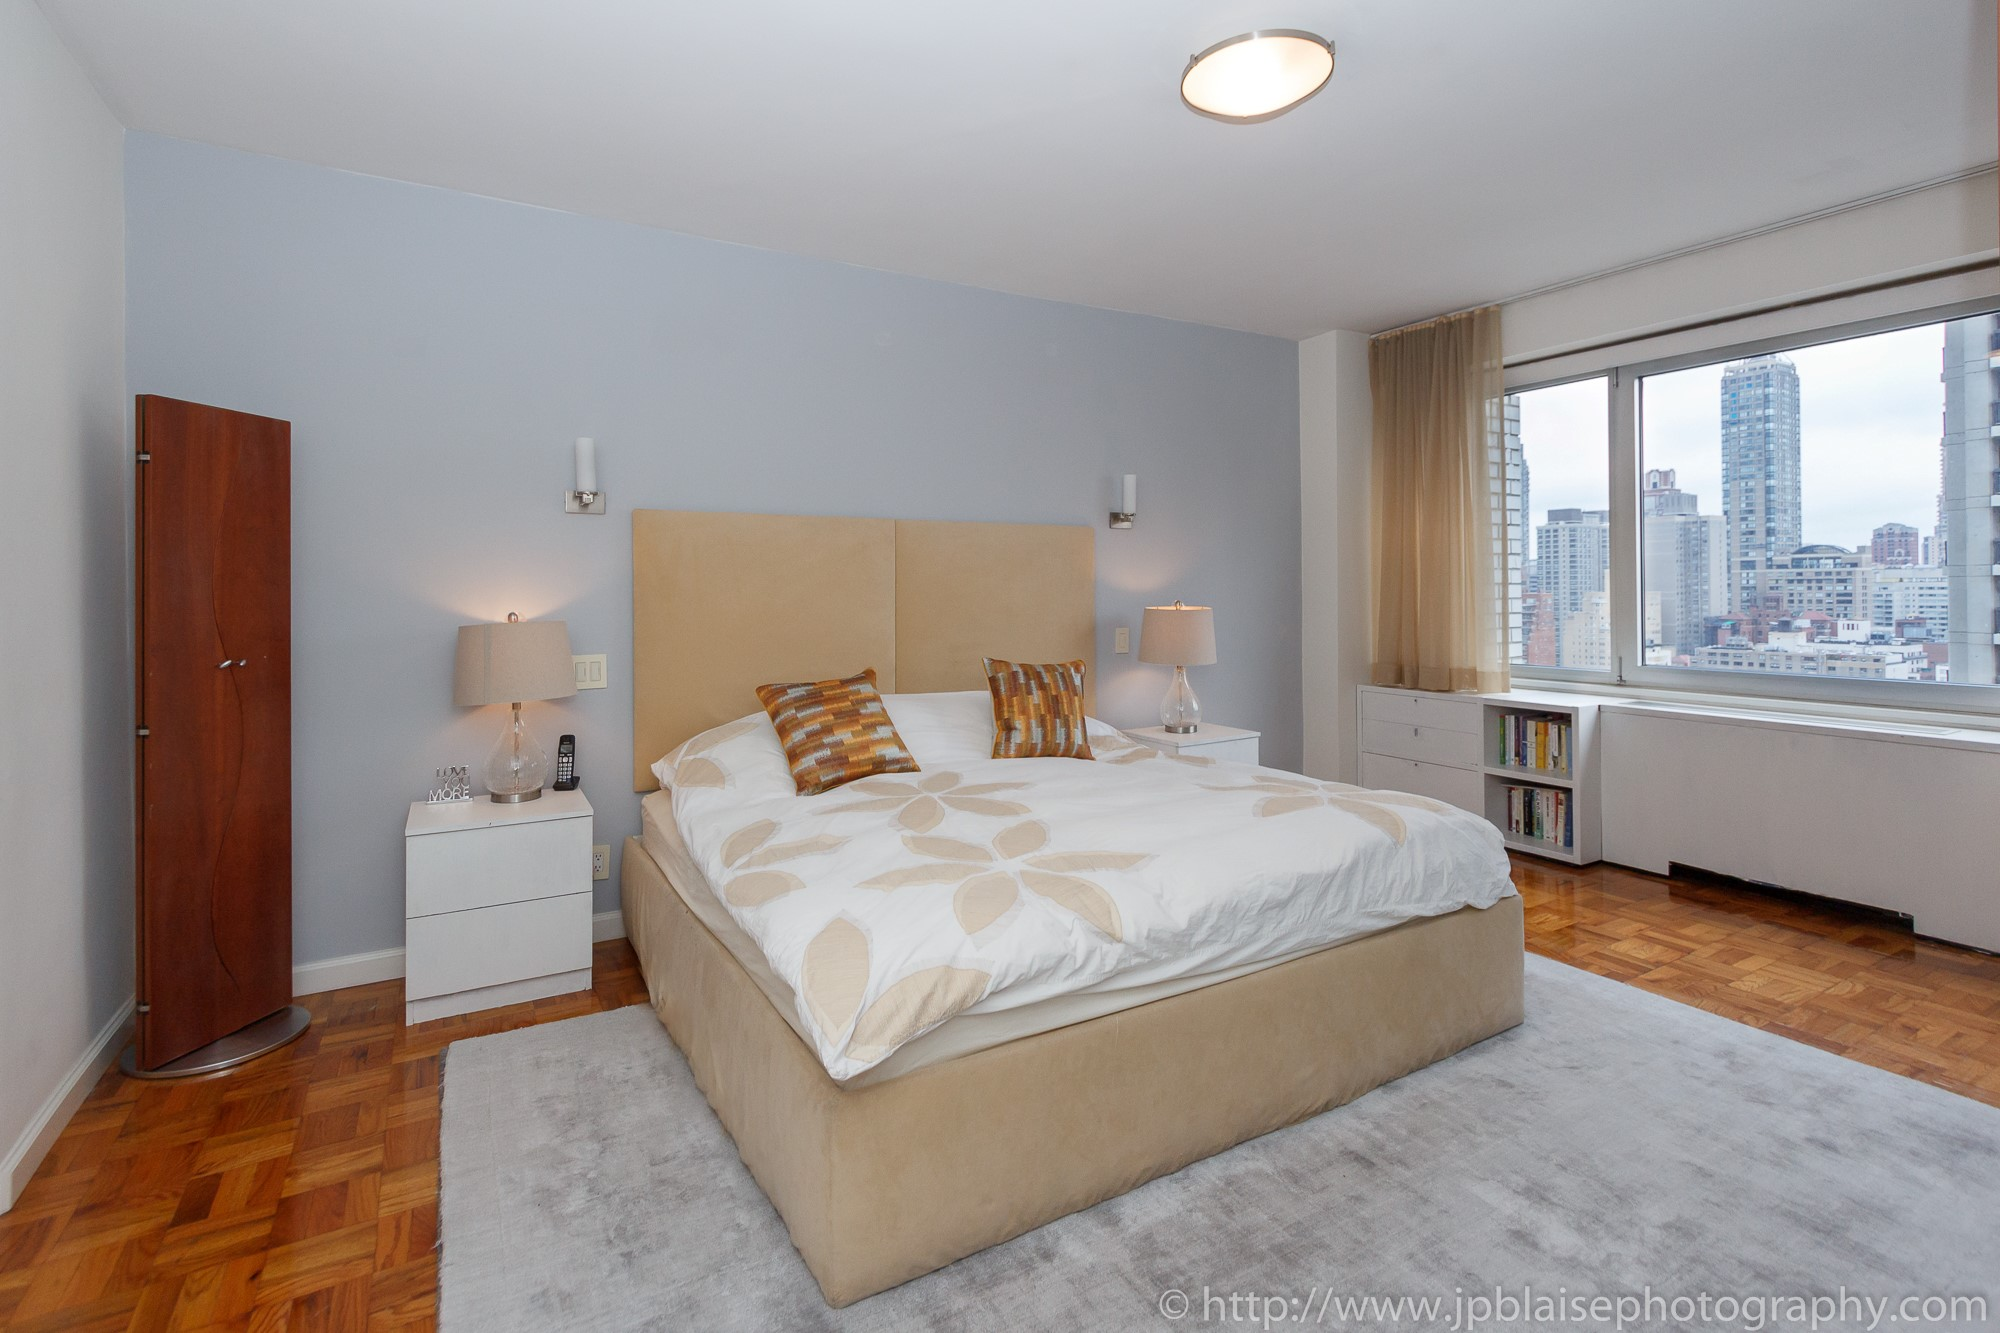 apartment photographer work three bedroom sutton place new york city